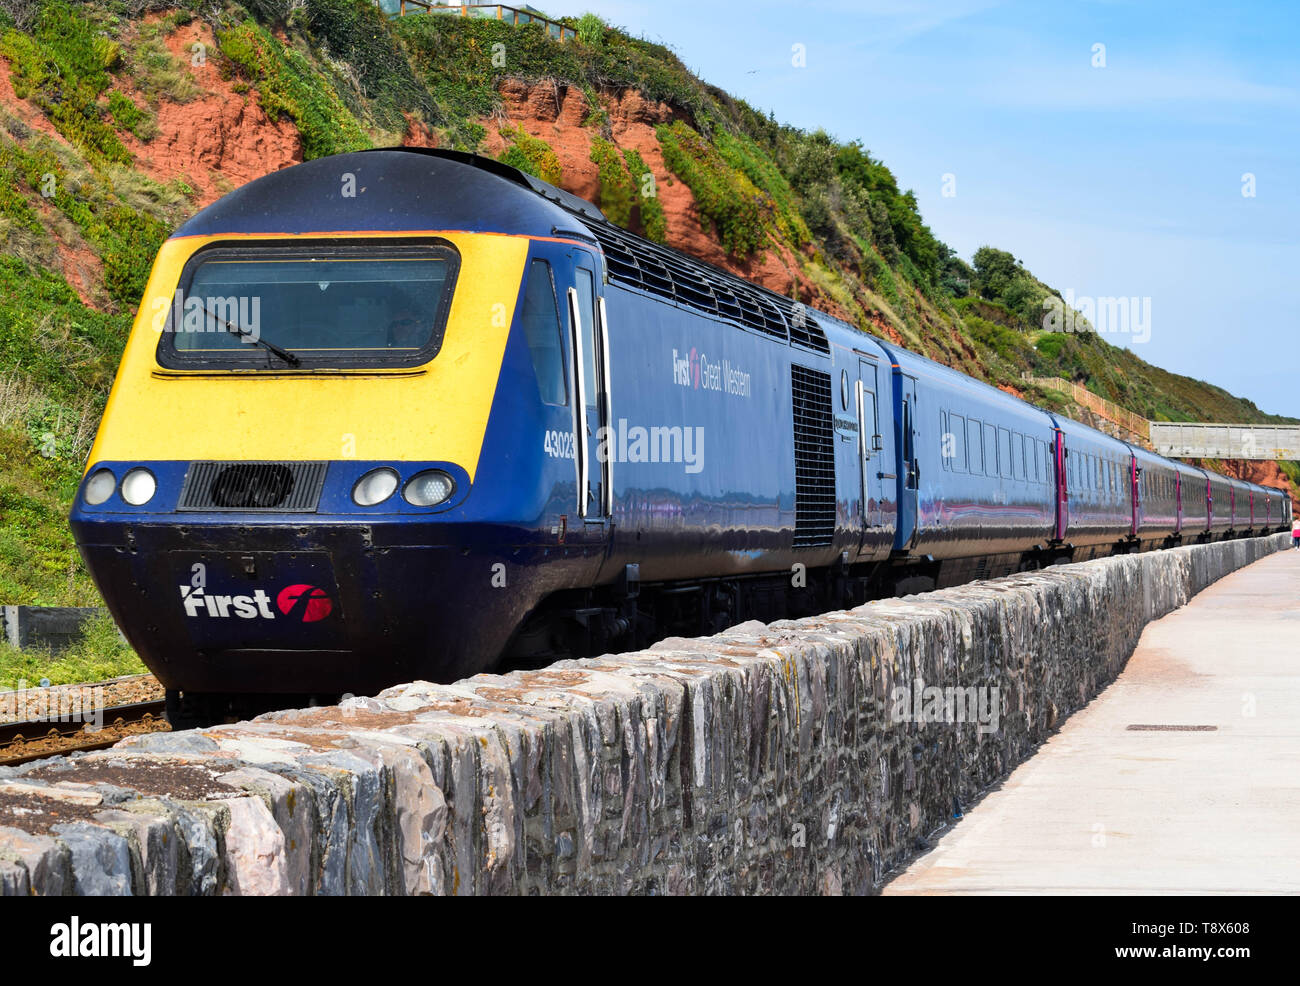 Class 43 GWR HST approaching Dawlish station in Devon. - Stock Image